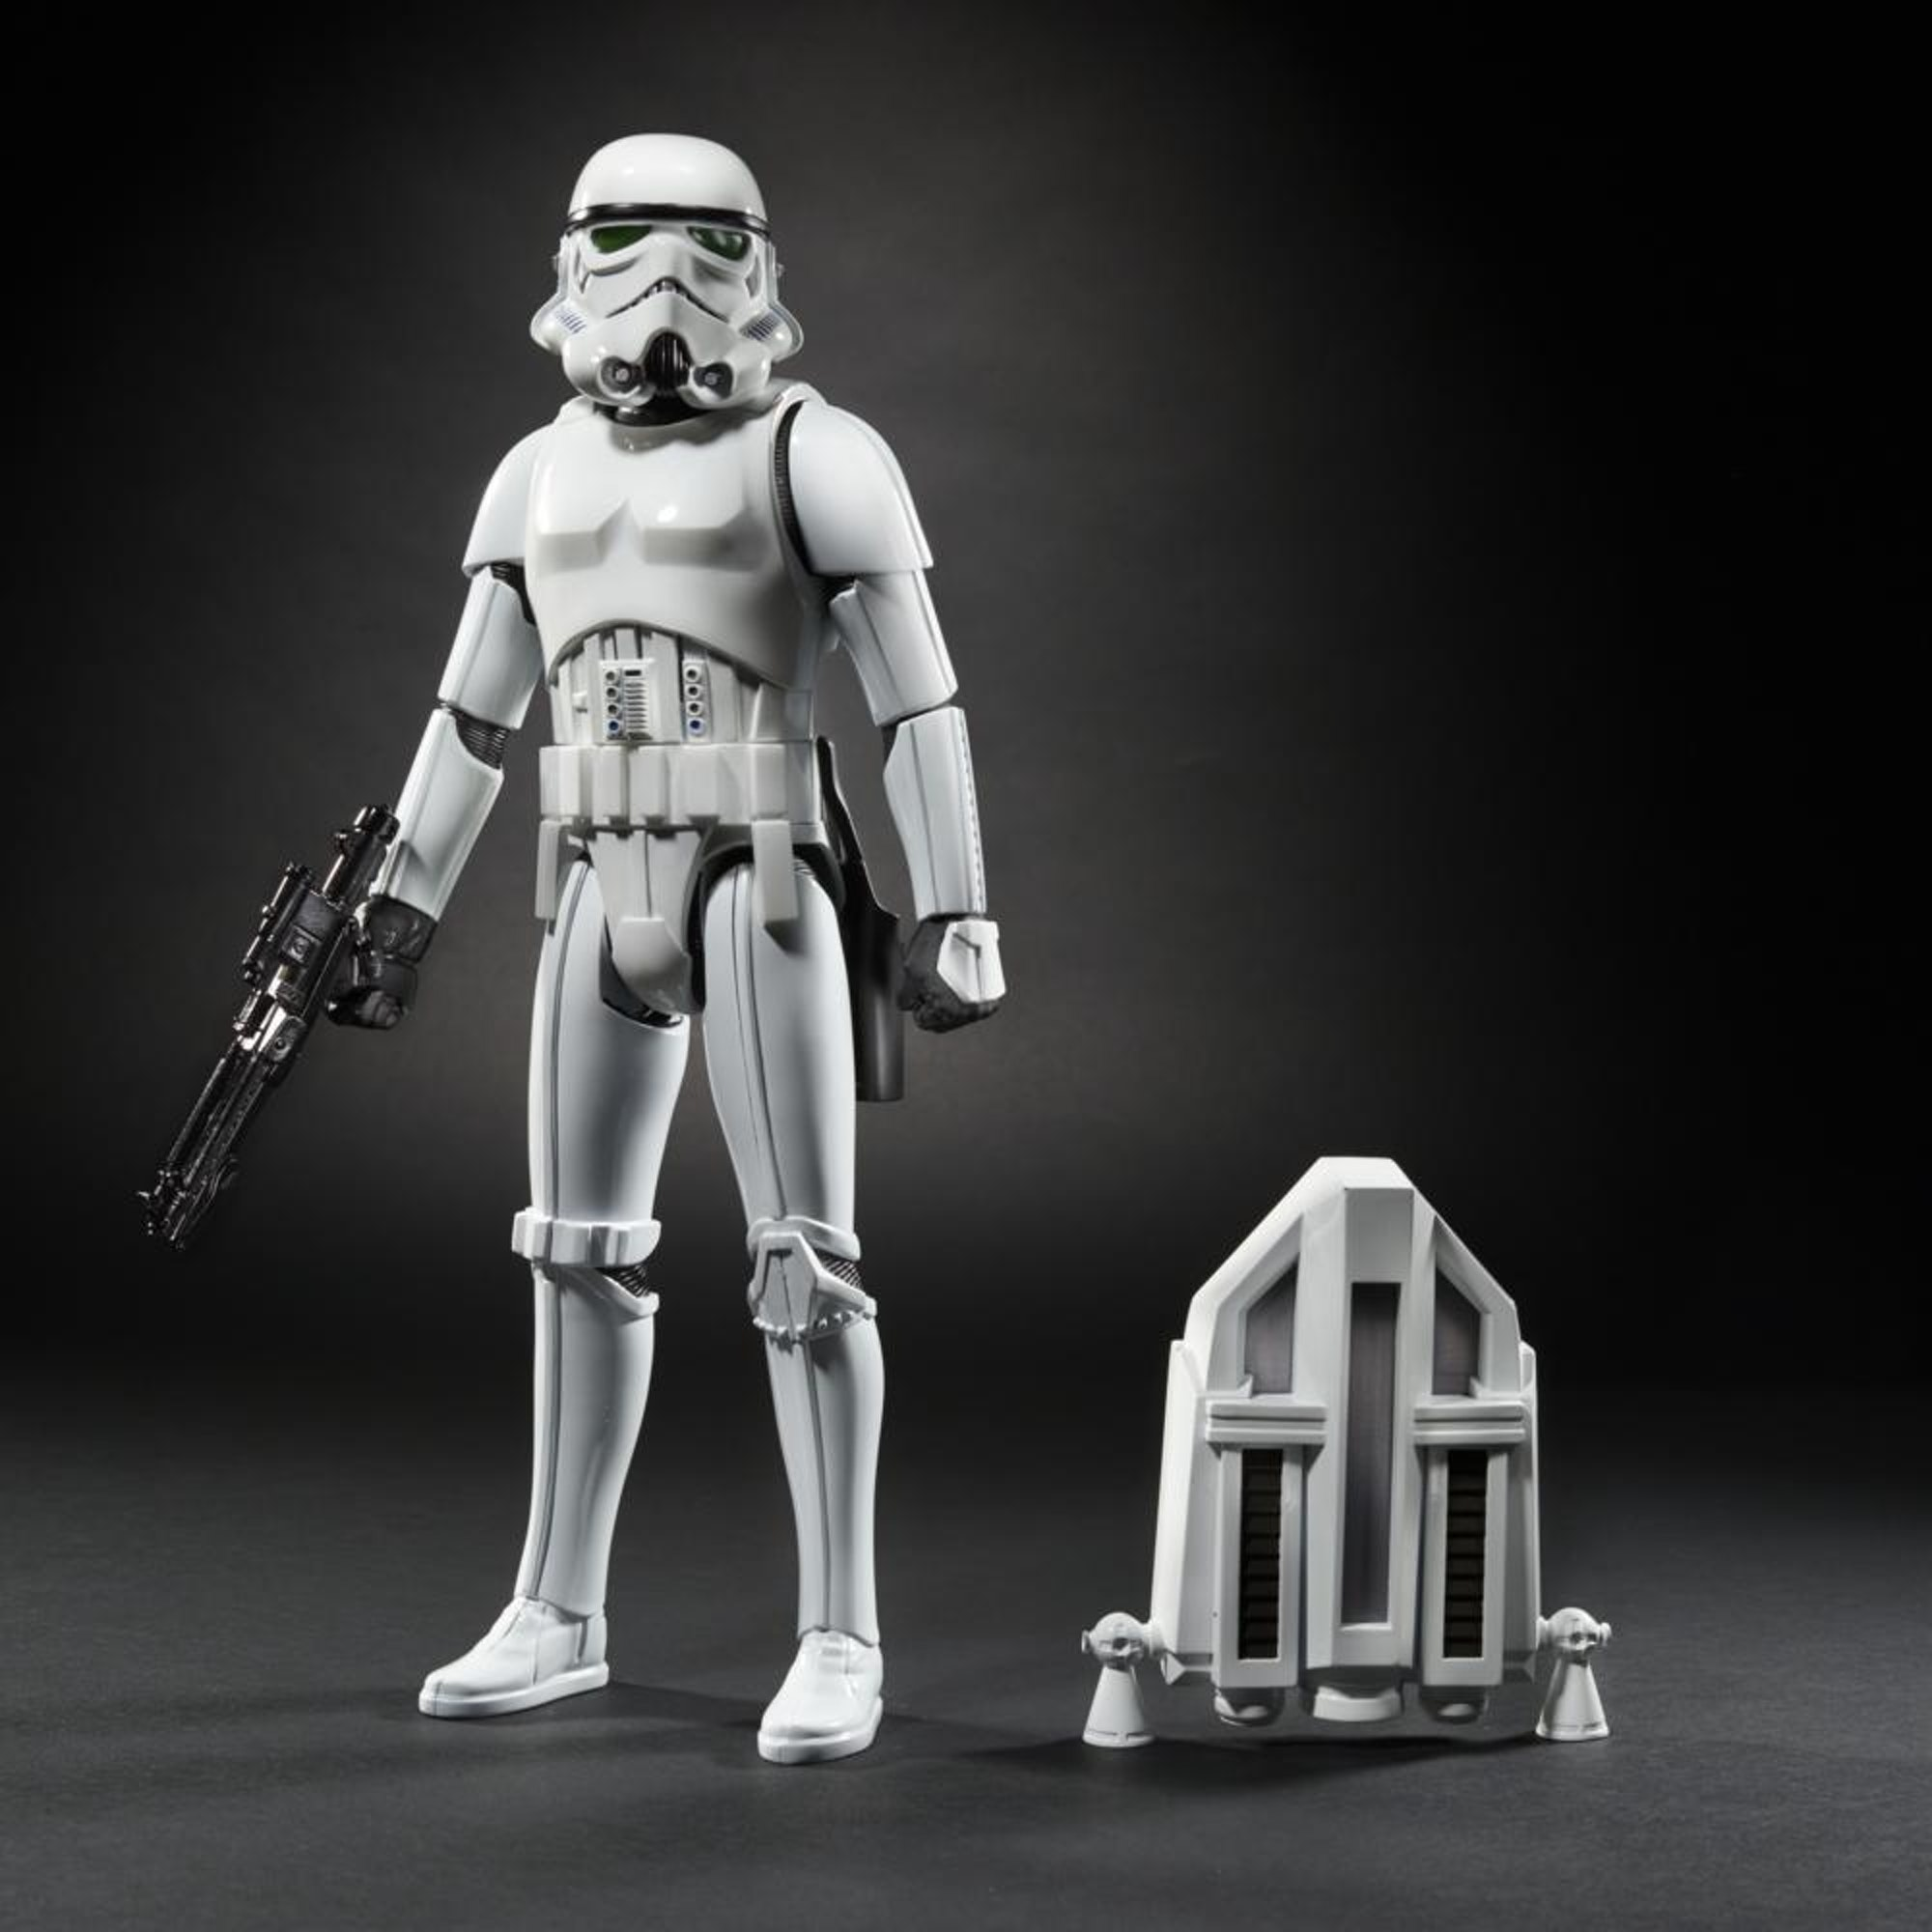 12 Inch InteracTech Imperial Stormtrooper with jetpack.